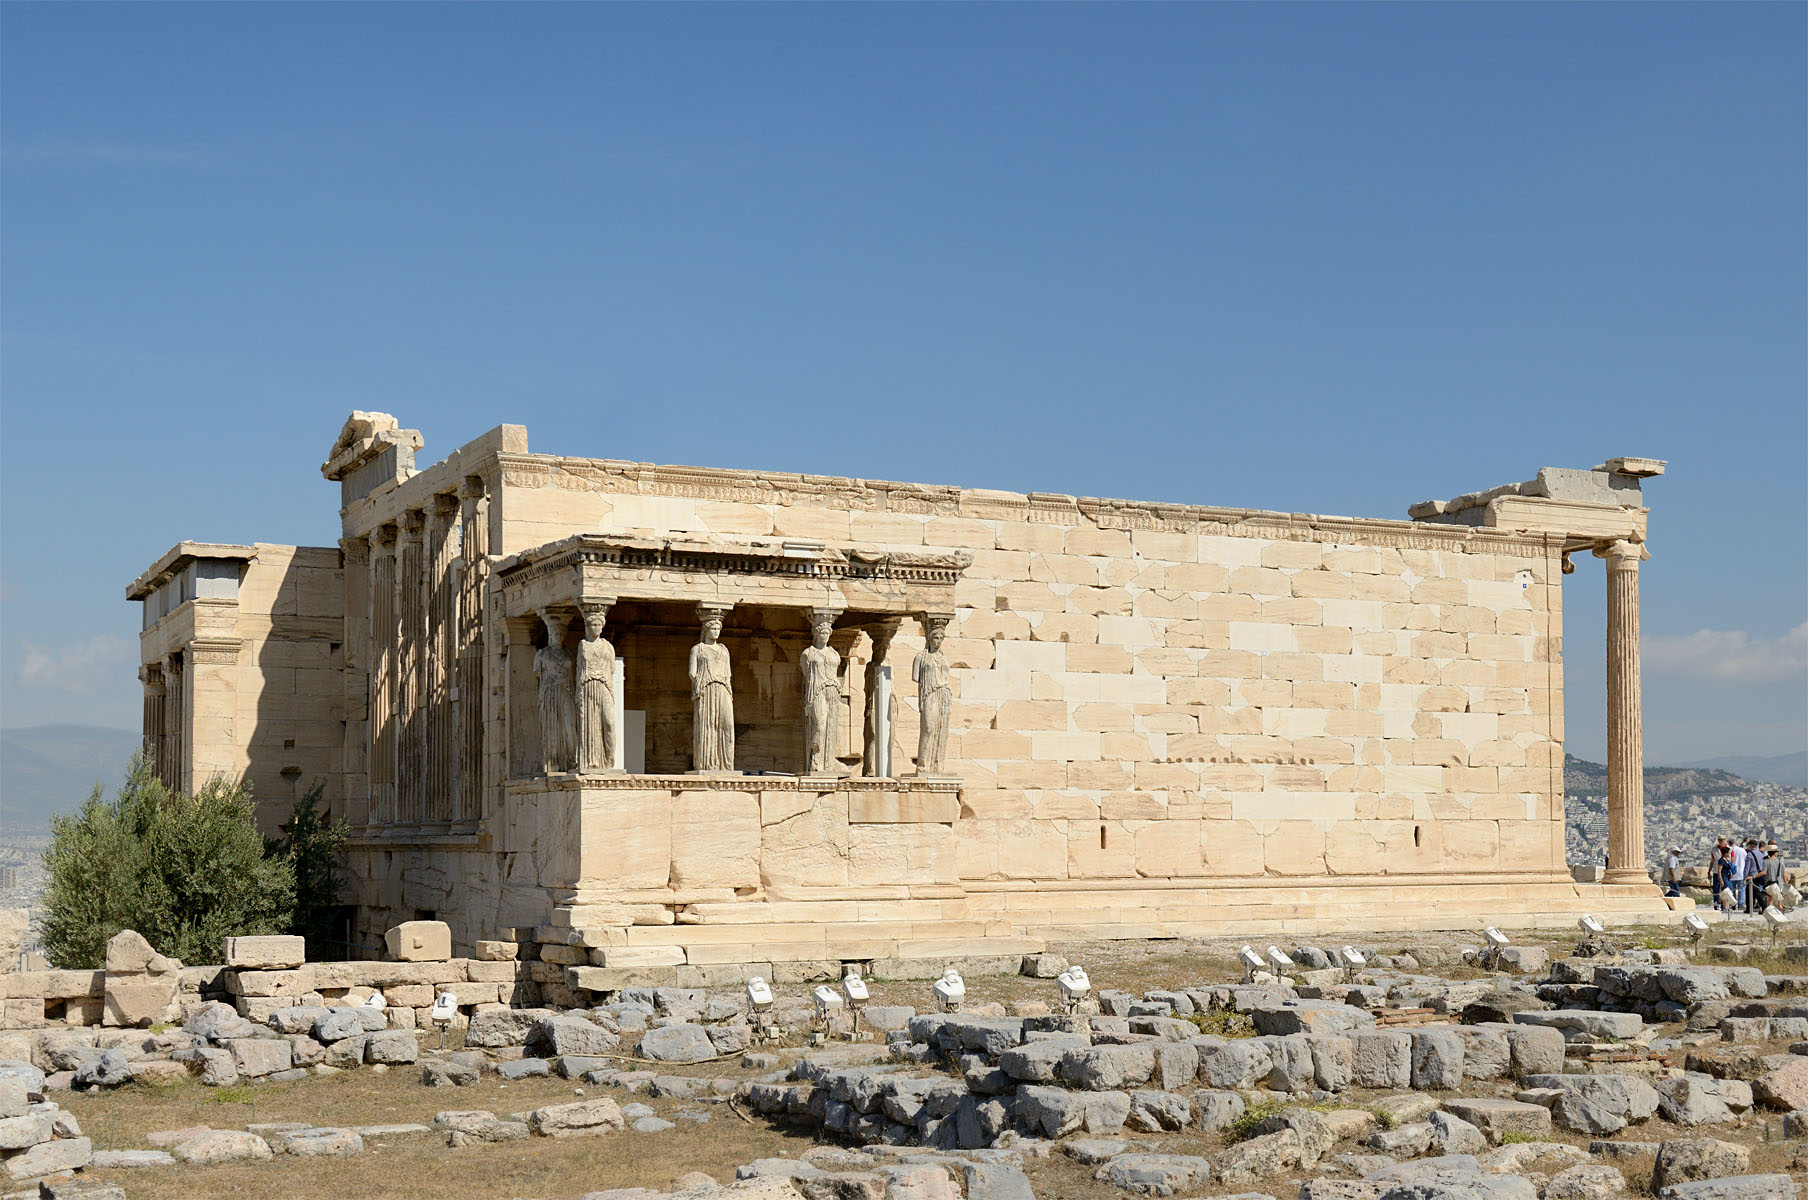 Athenian acropolis. Erechtheion. Porch of the Korai (Maidens). Athens